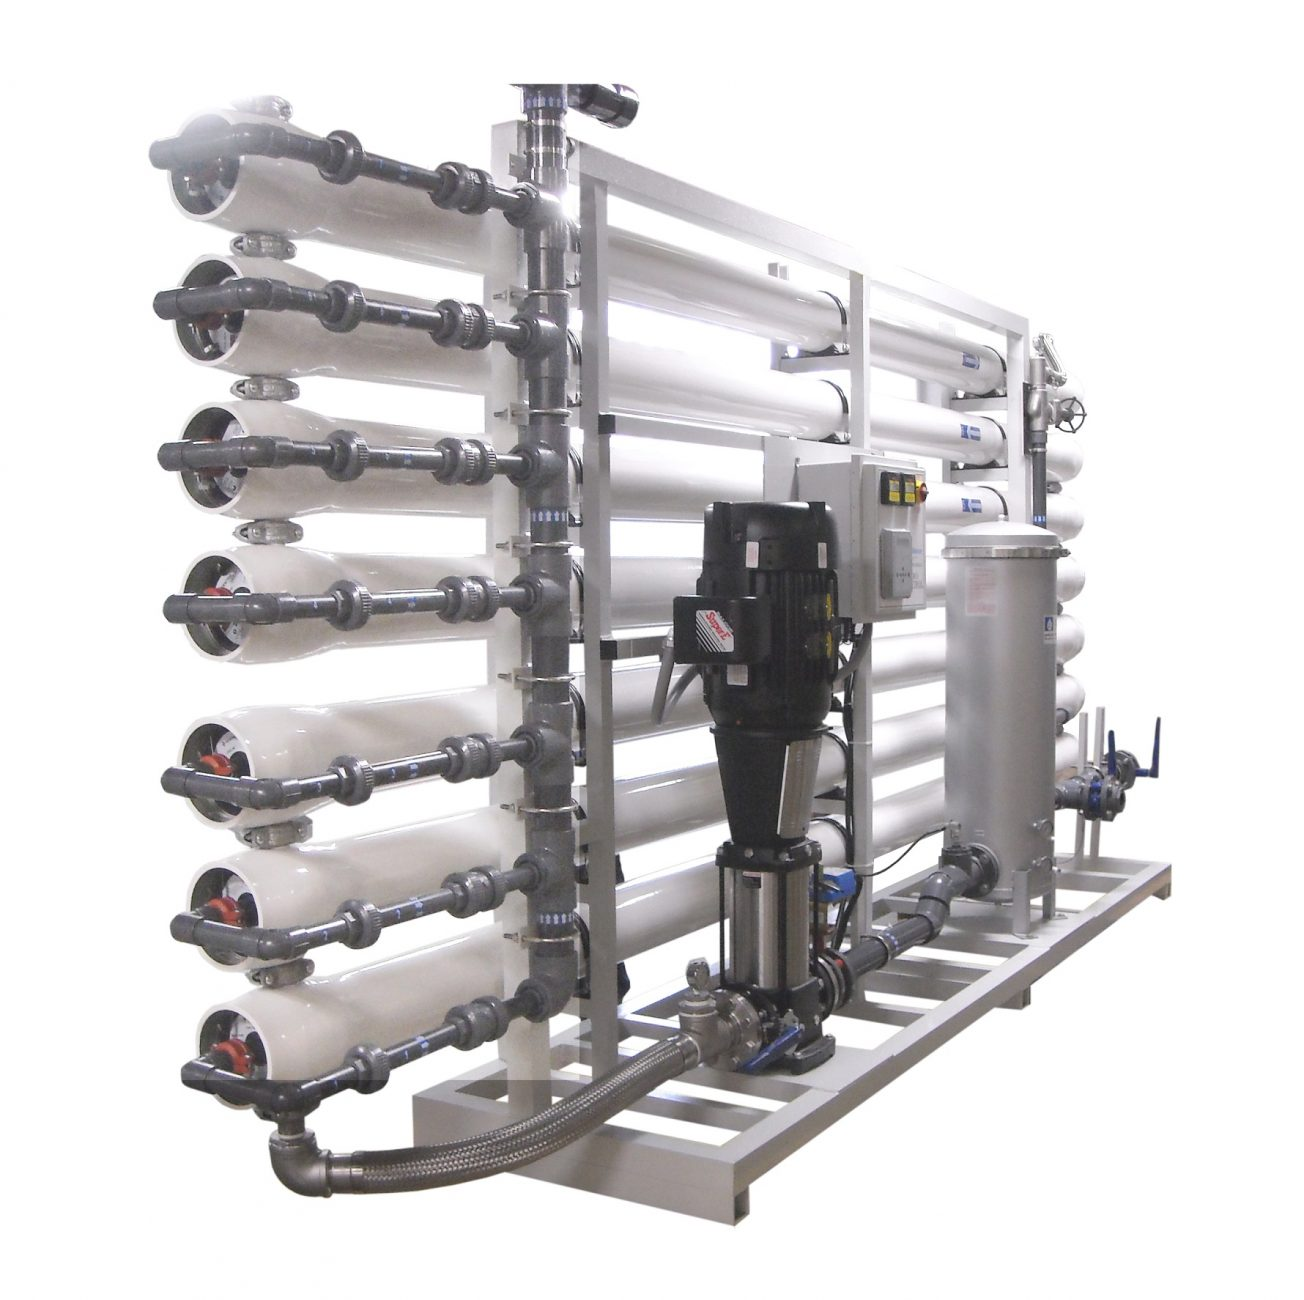 C Amp I Reverse Osmosis Systems 18 000 Up To 129 600 Gpd